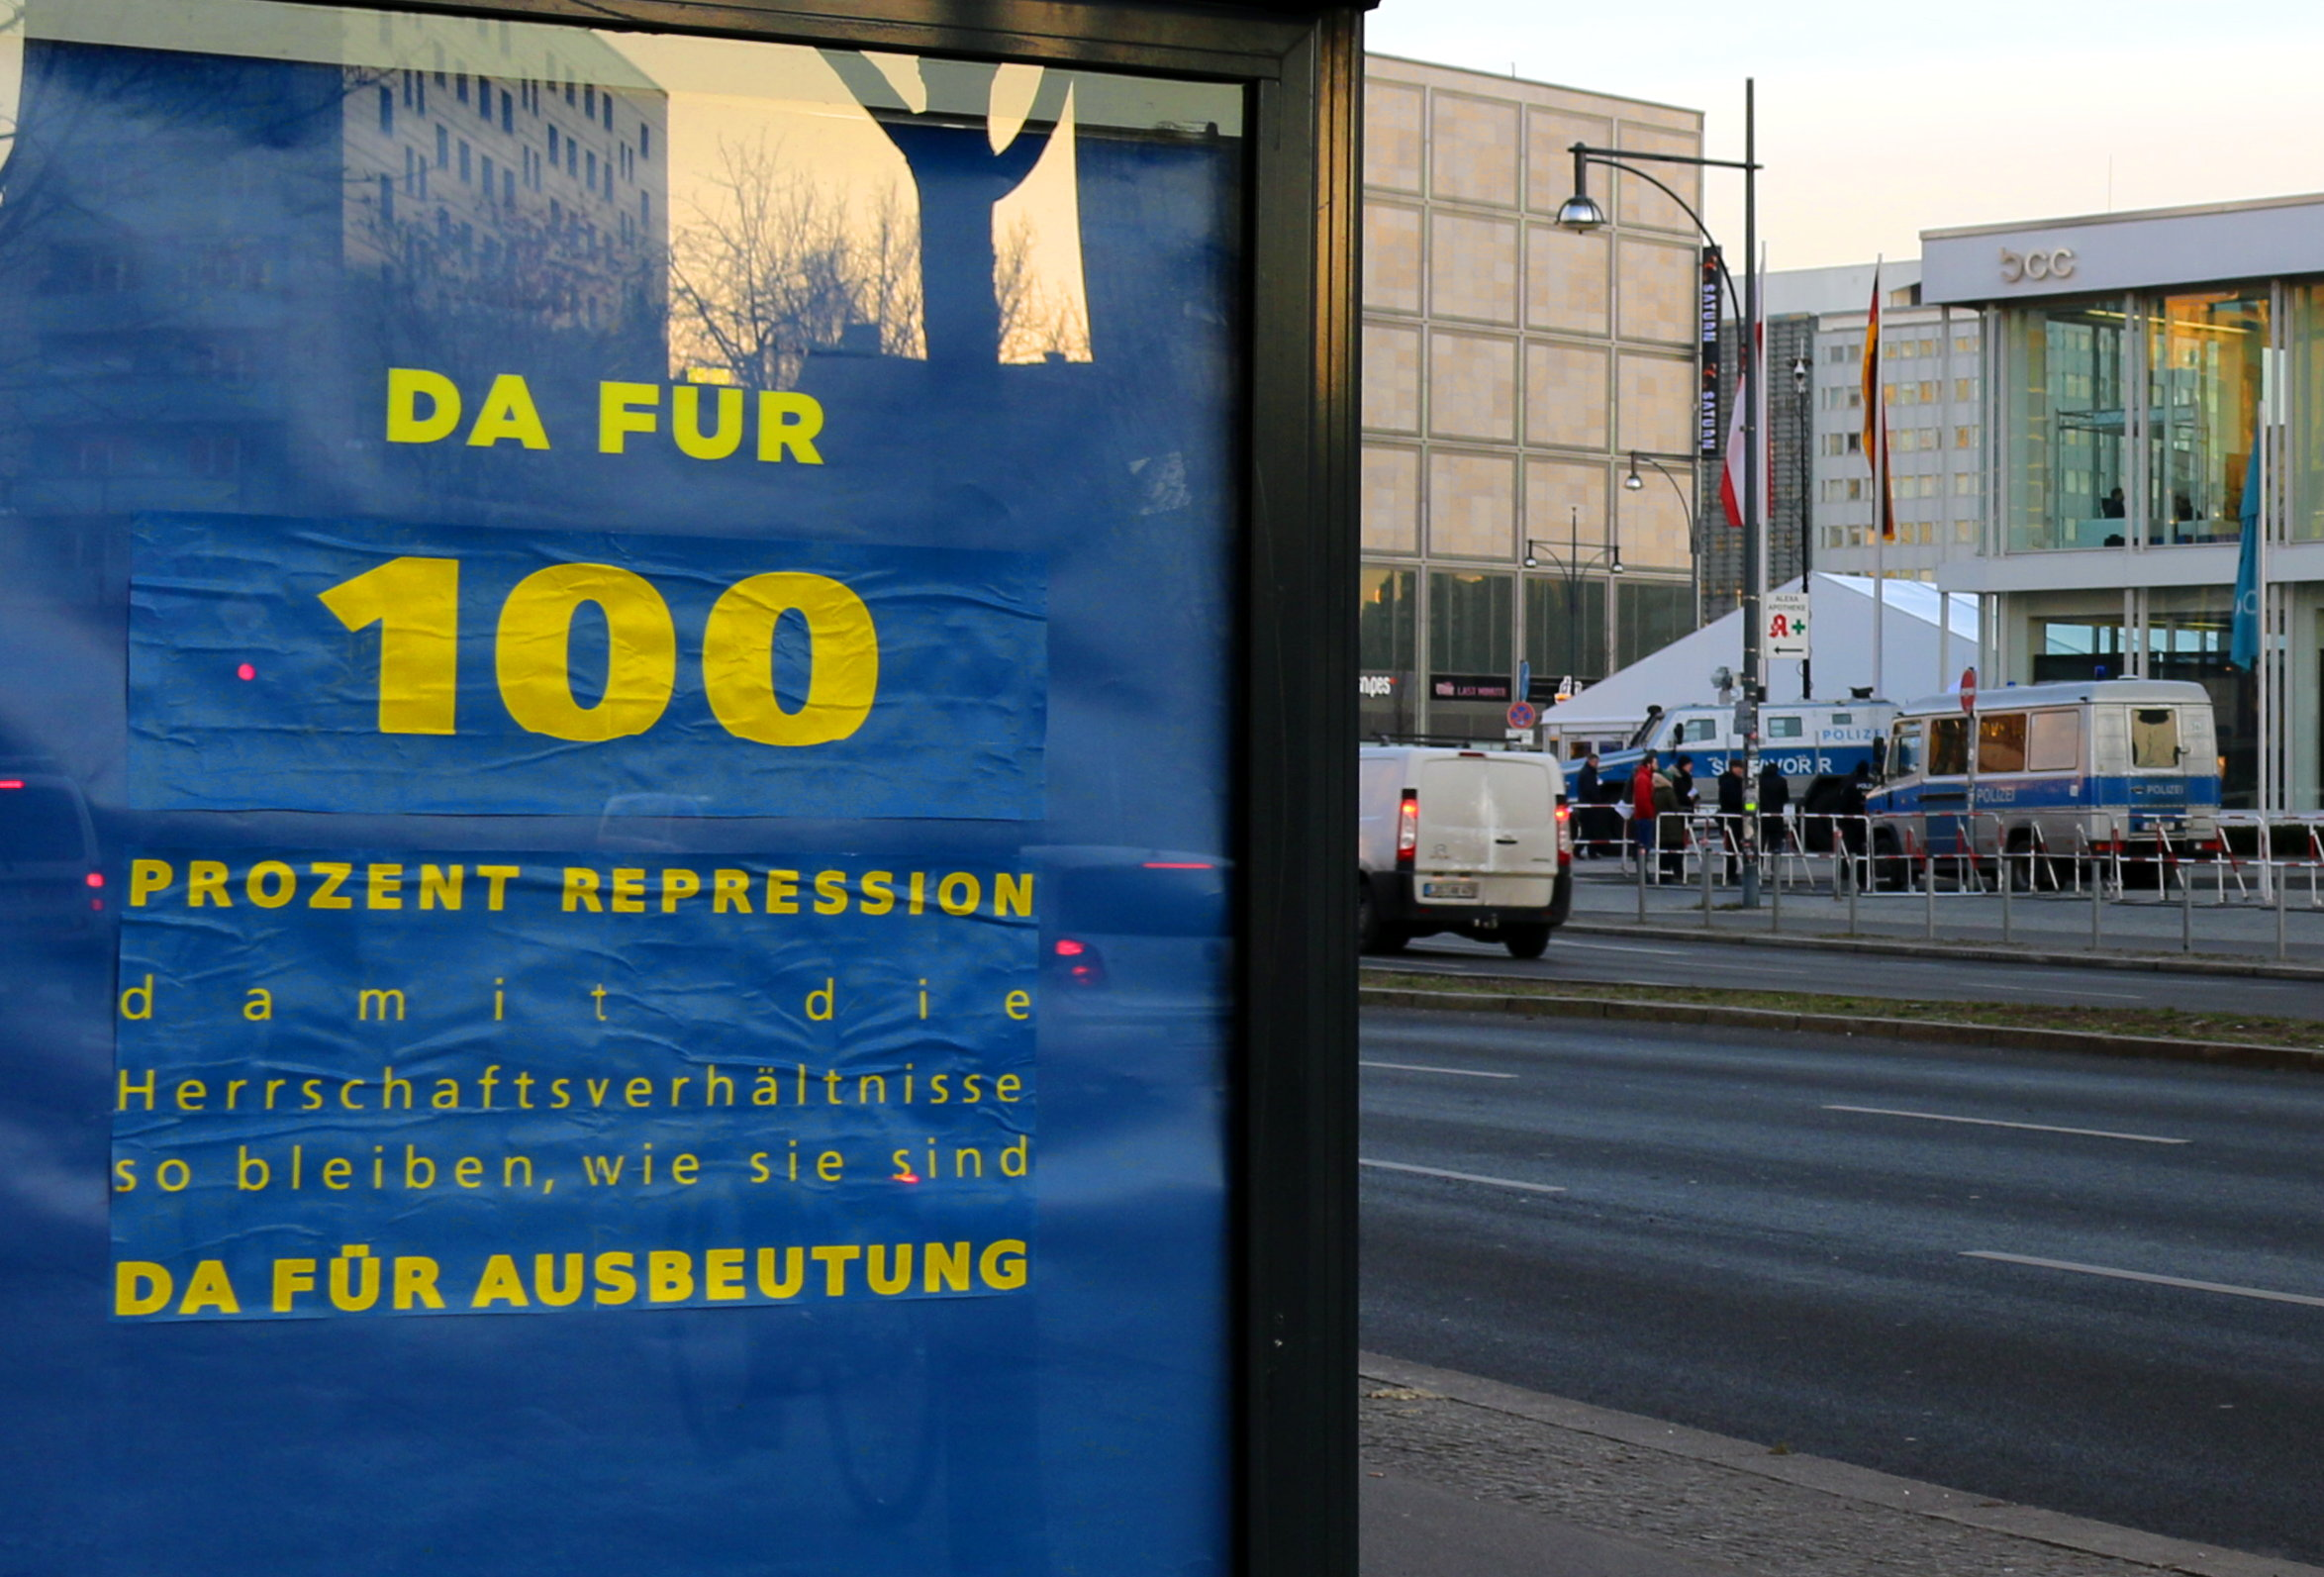 B Polizeikongress Protest Mit Adbusting Am Alex Deindymediaorg